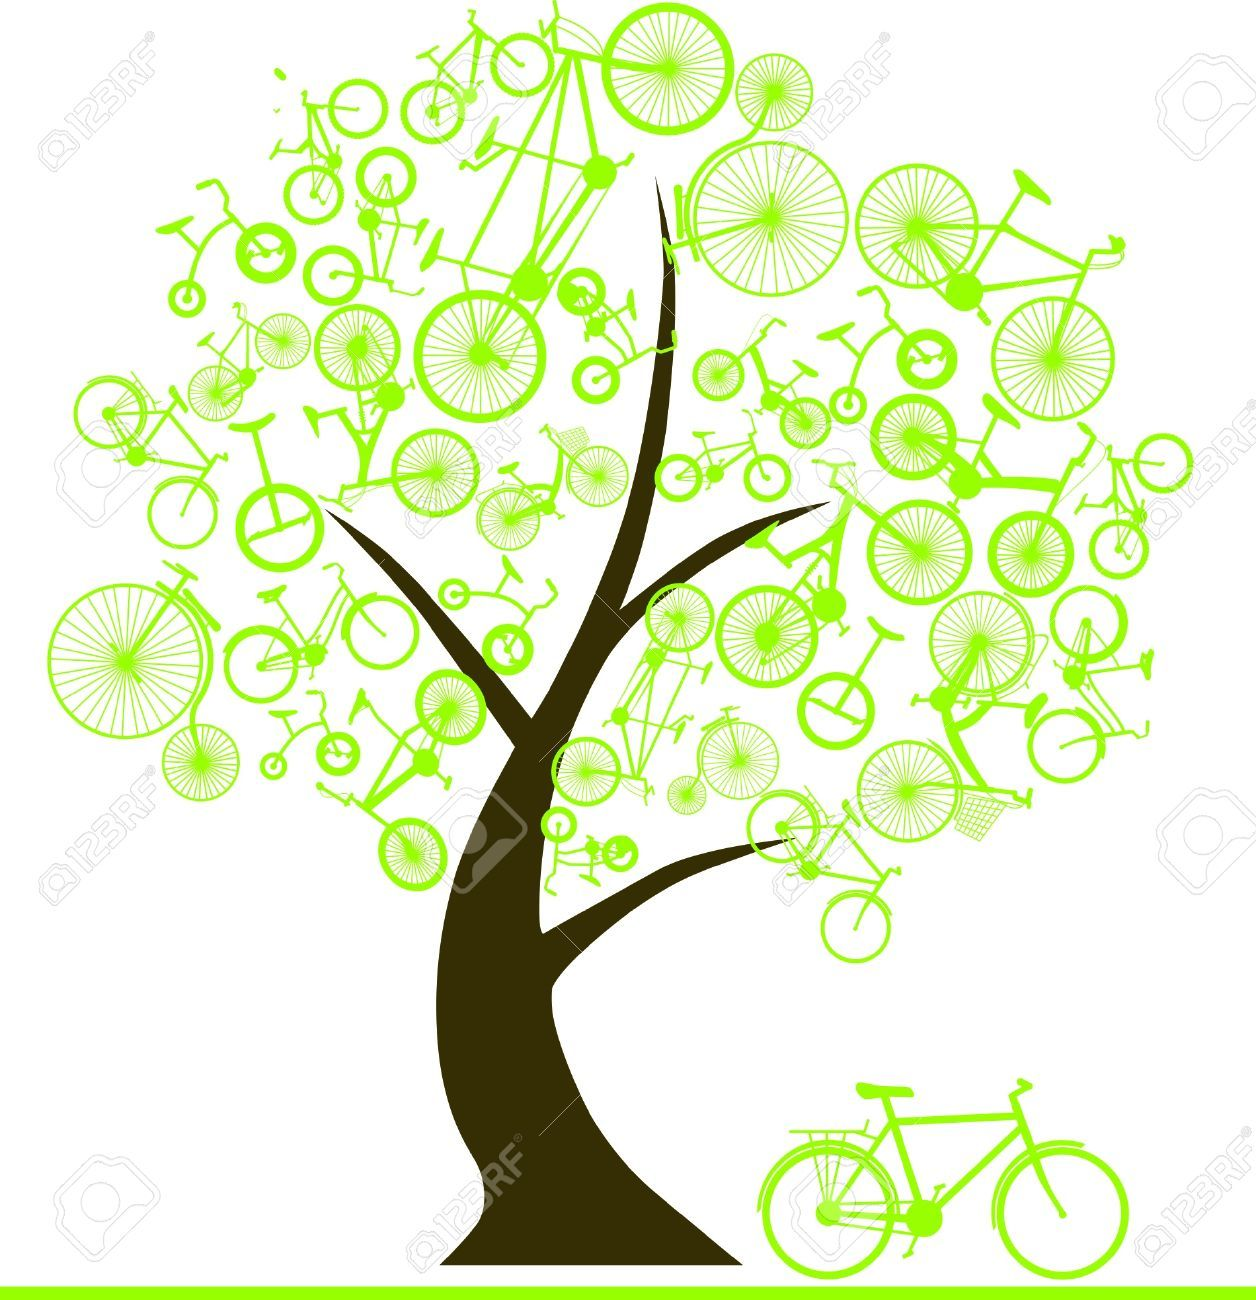 46+ Free Whimsical Tree Clipart.